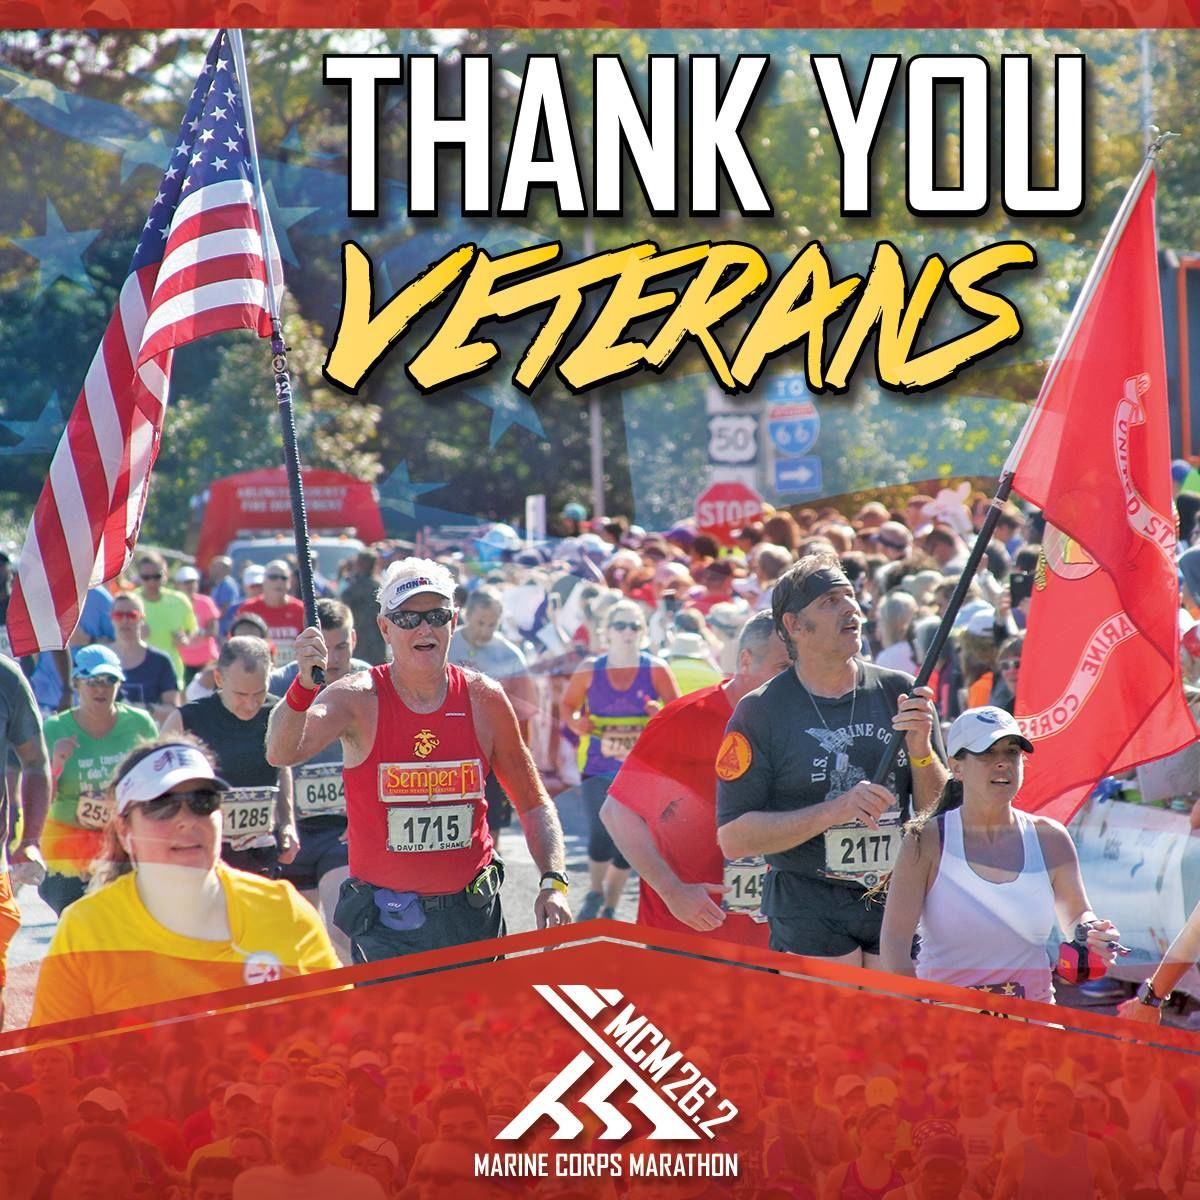 Steve Bozeman is pictured here holding the American flag while running the Marine Corps Marathon. (Courtesy Steve Bozeman)